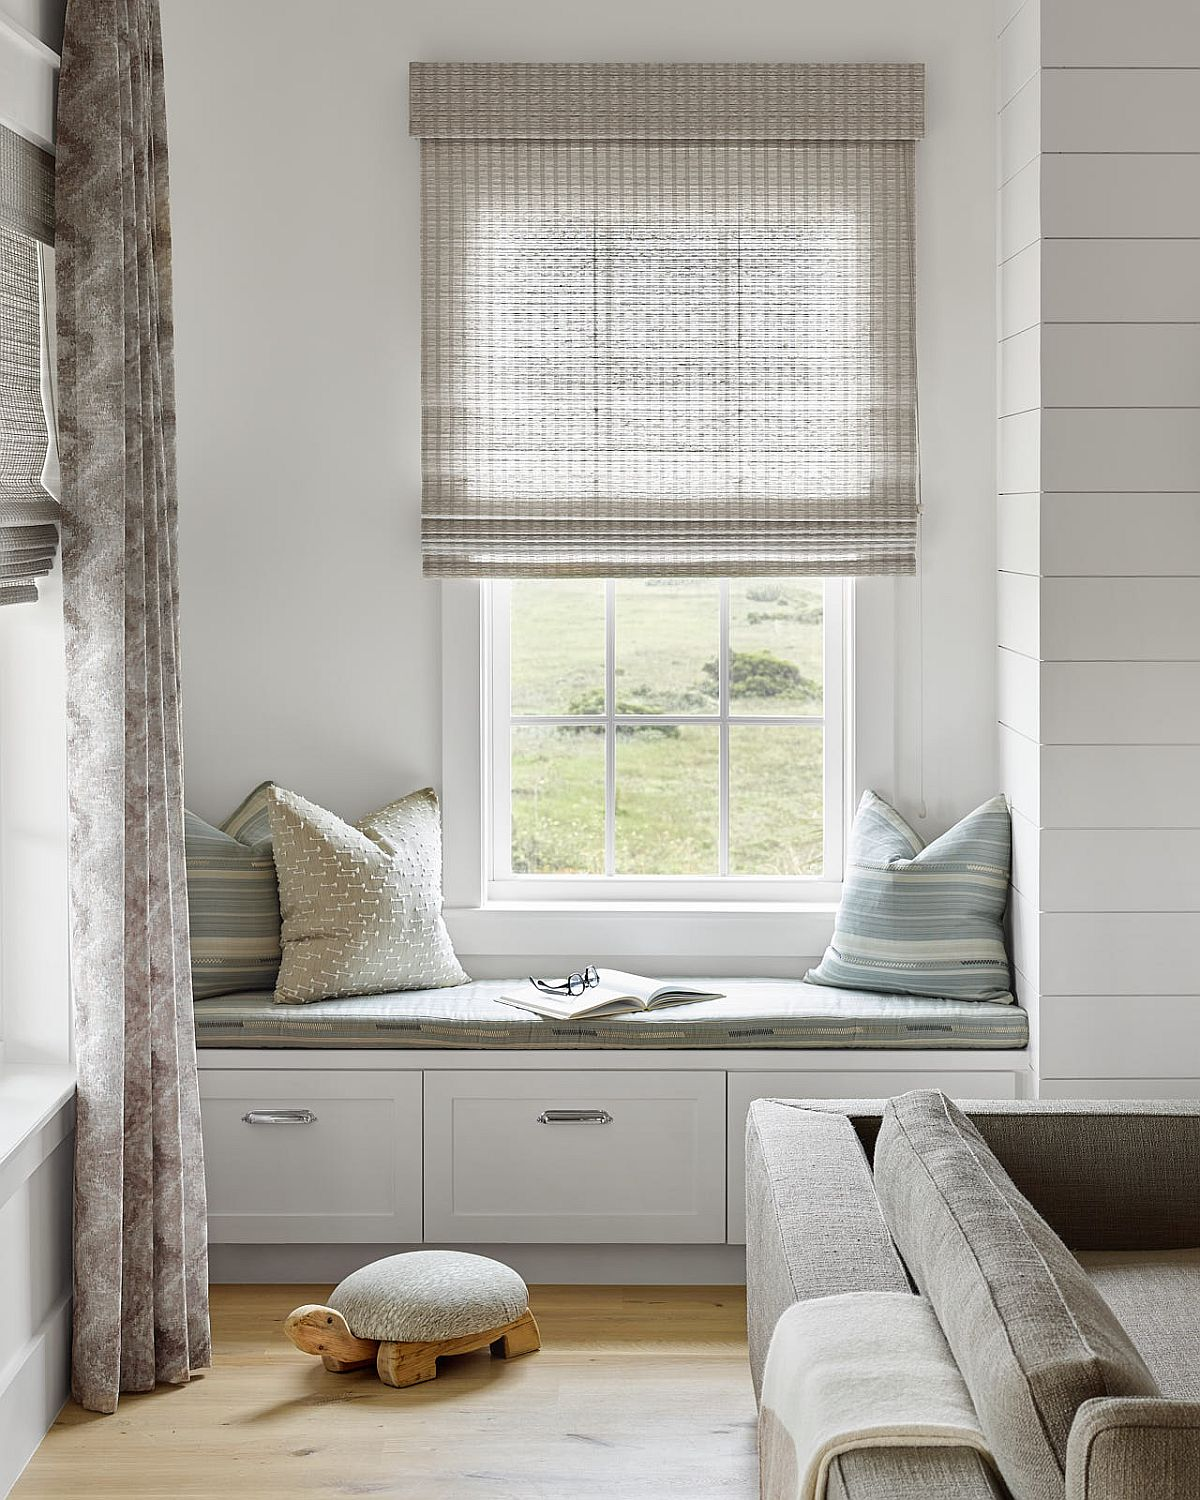 Custom built-in window seat adds to the options in the living room